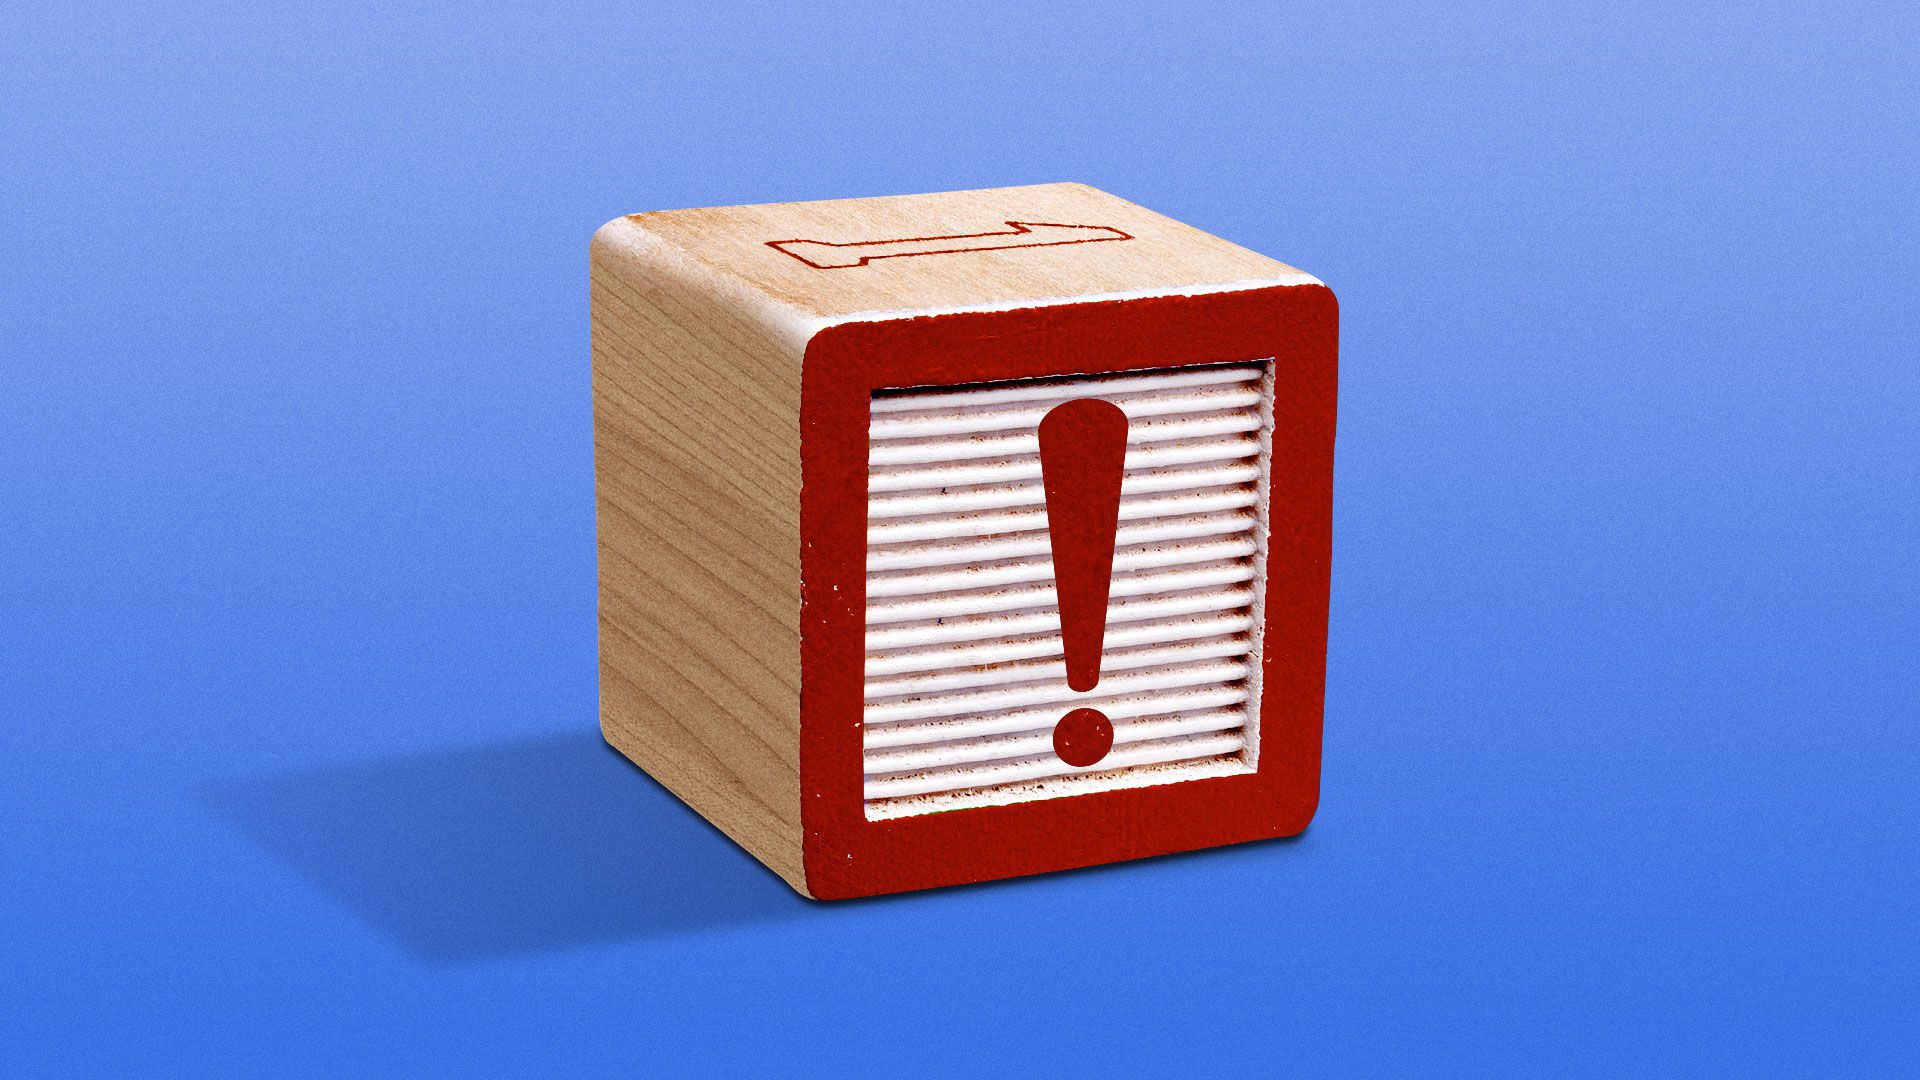 Illustration of wooden child's play block with an exclamation point